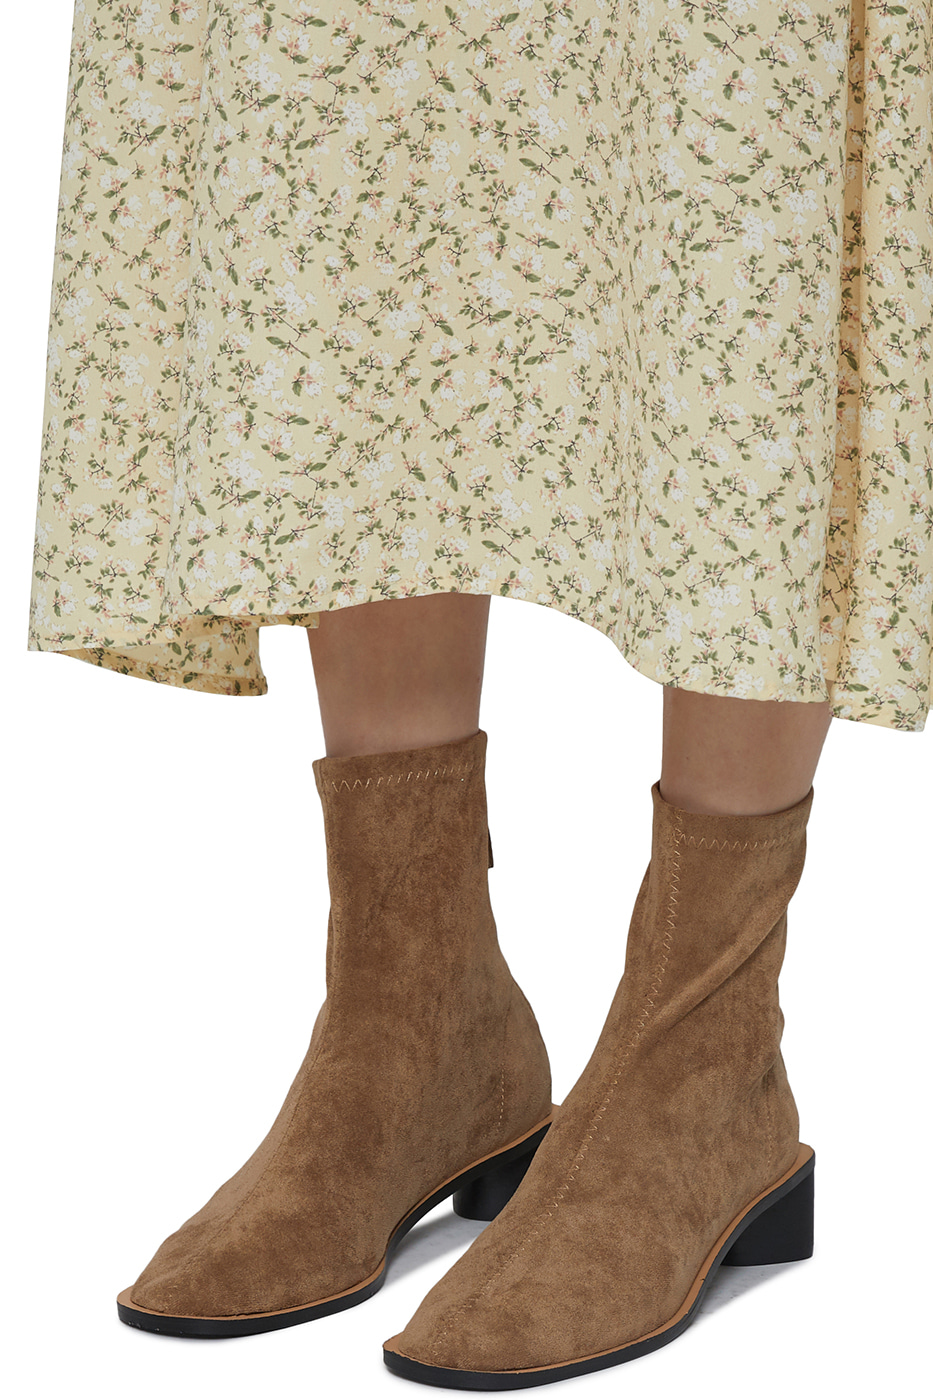 Smooth suede middle-heel ankle boots